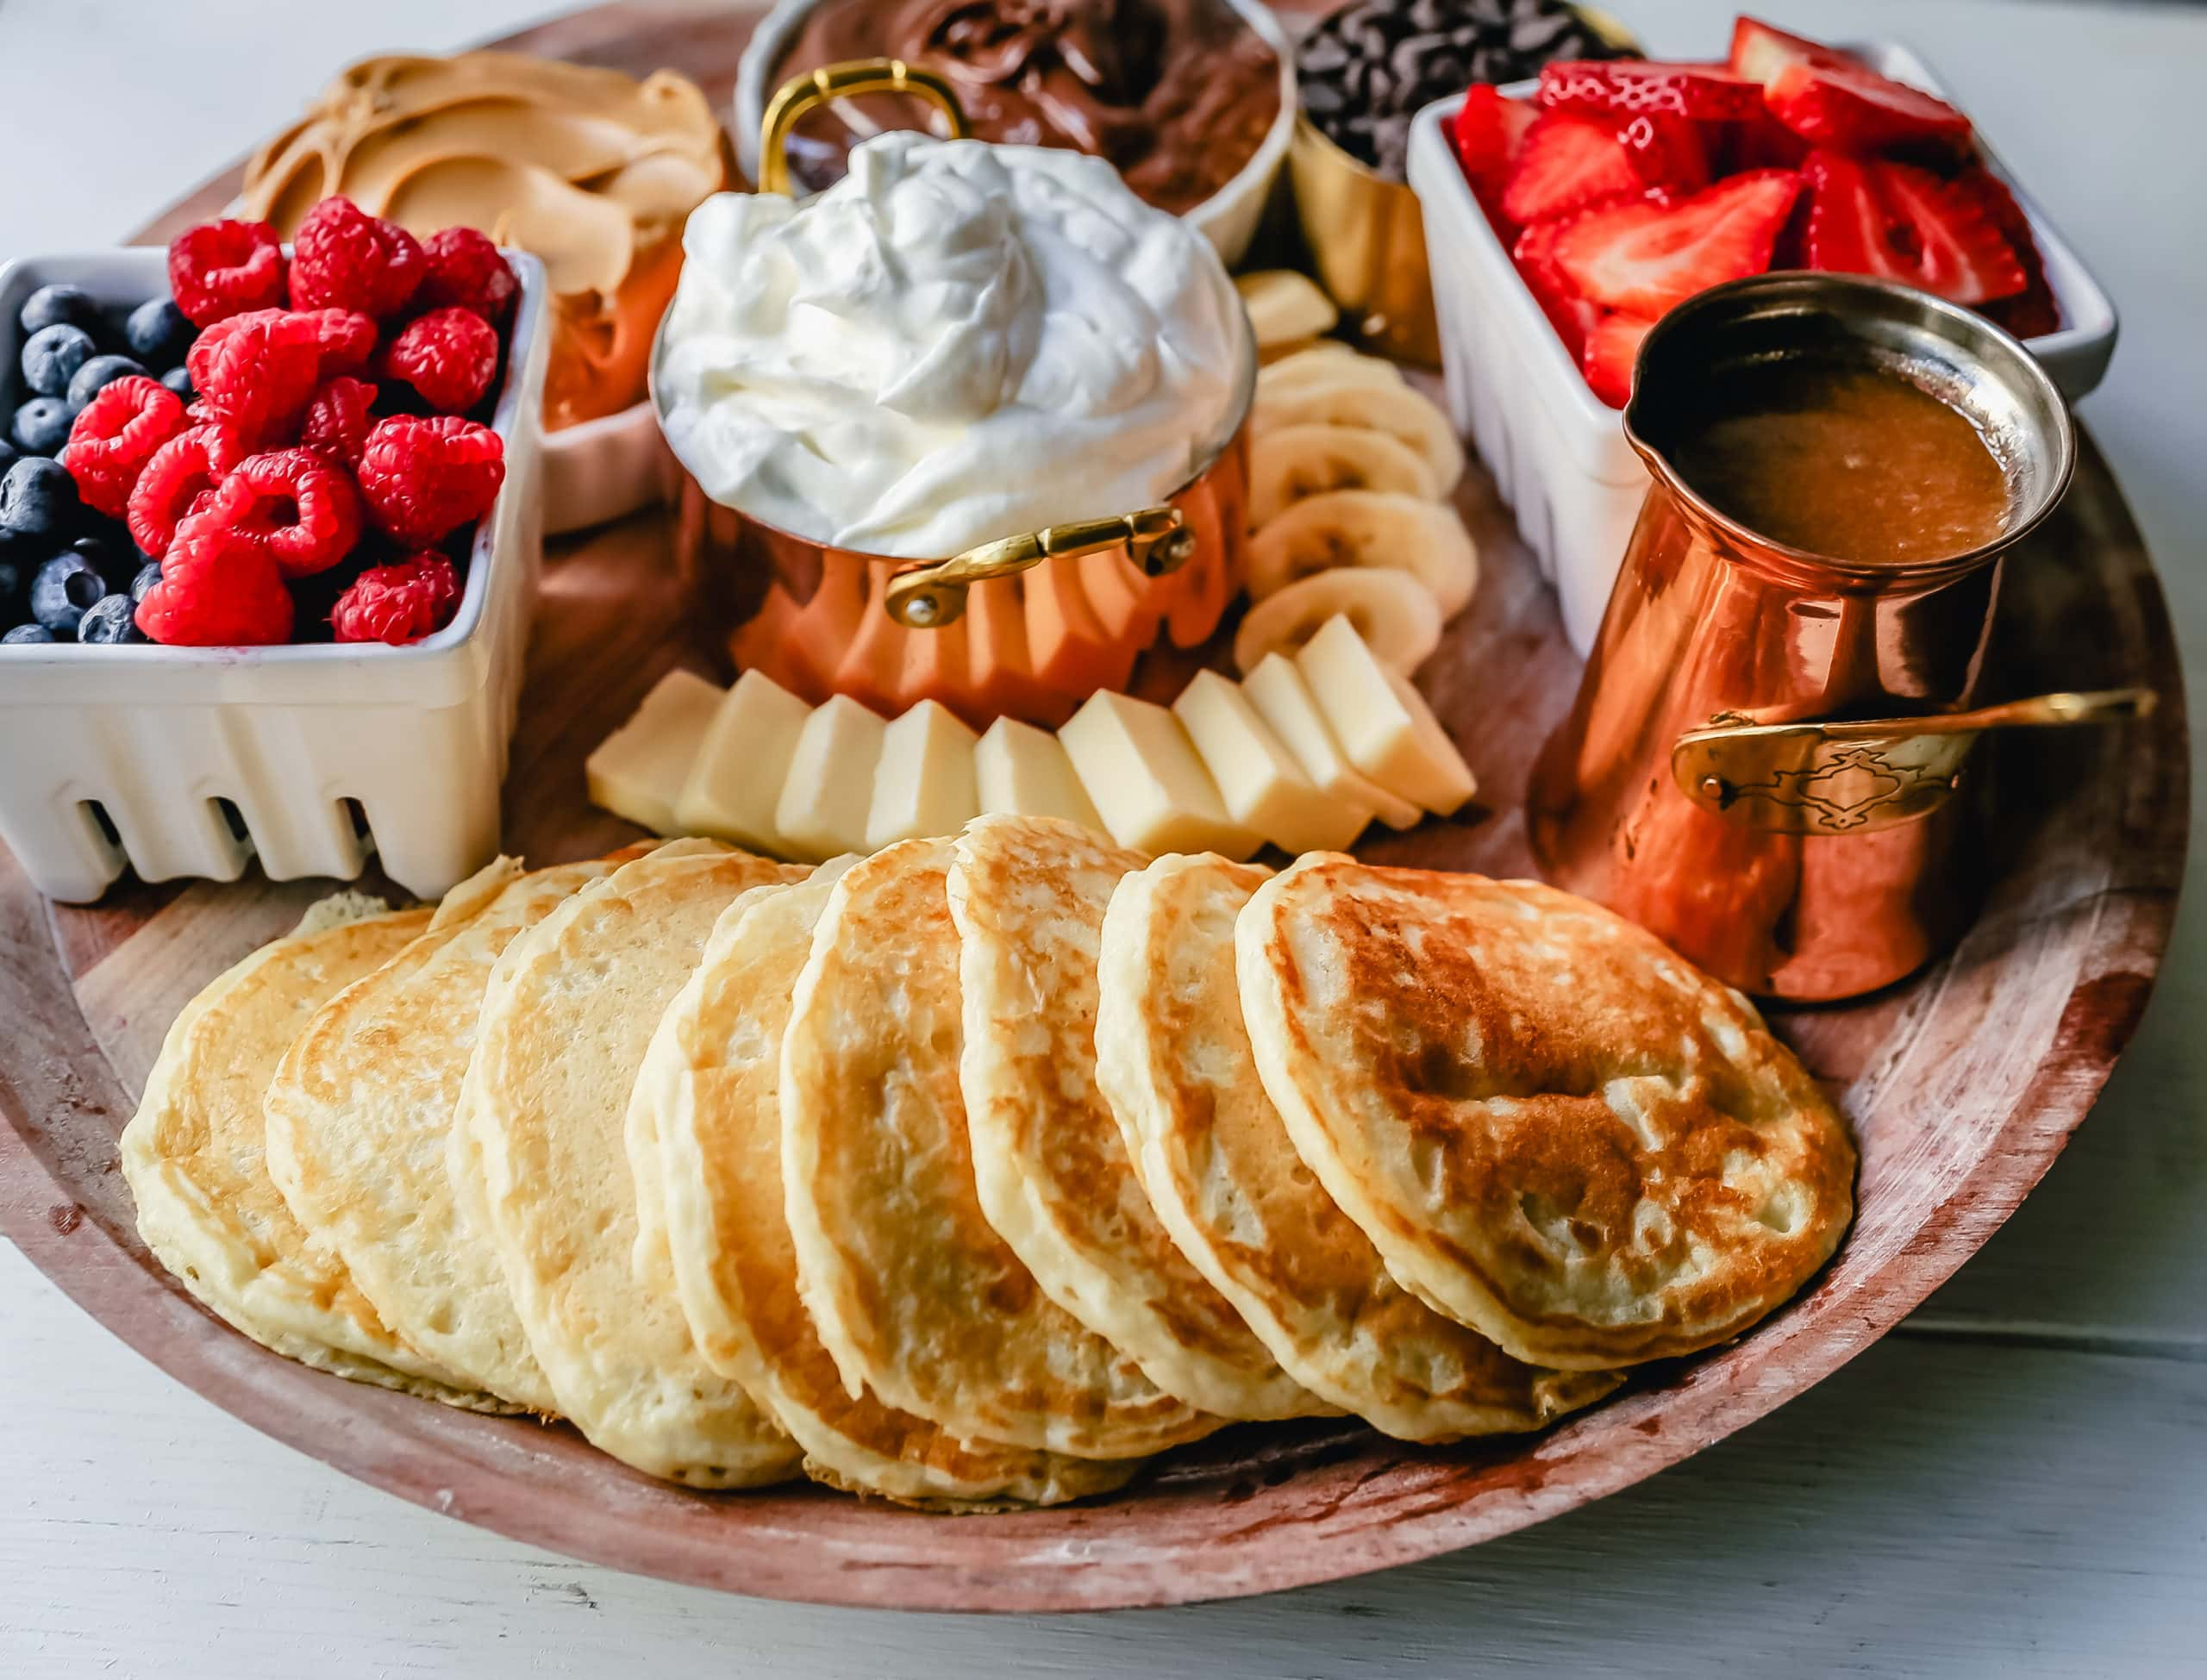 Breakfast Pancake Board. The perfect breakfast for entertaining! Homemade buttermilk pancakes topped with all of your favorite toppings -- fresh berries, whipped cream, homemade syrup, Nutella, chocolate chips, peanut butter, and more.